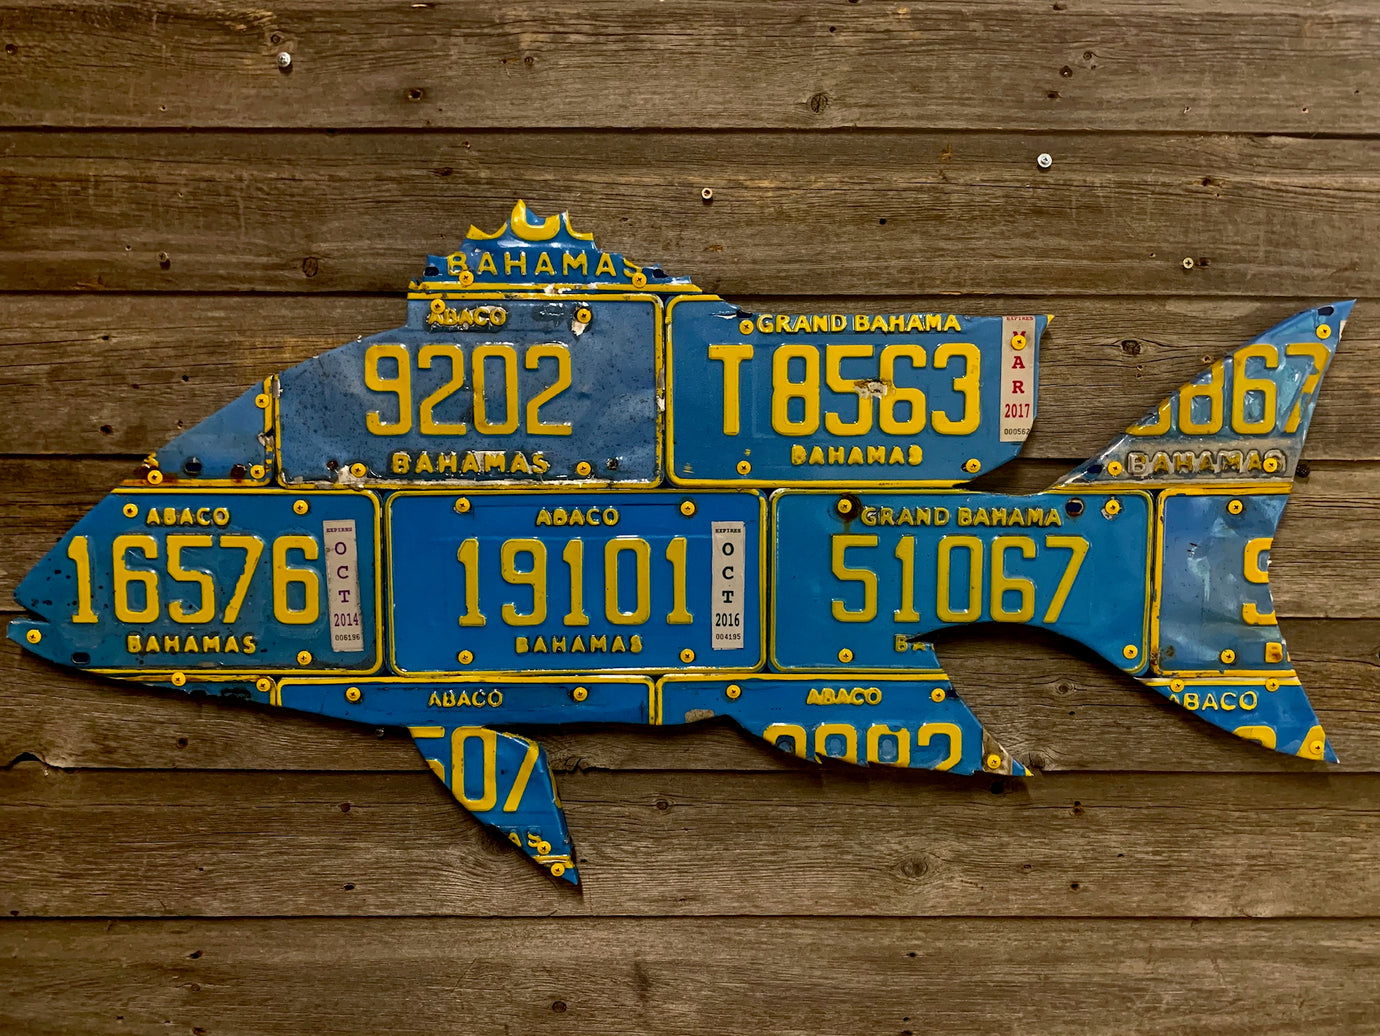 Bahamas Mutton Snapper License Plate Art